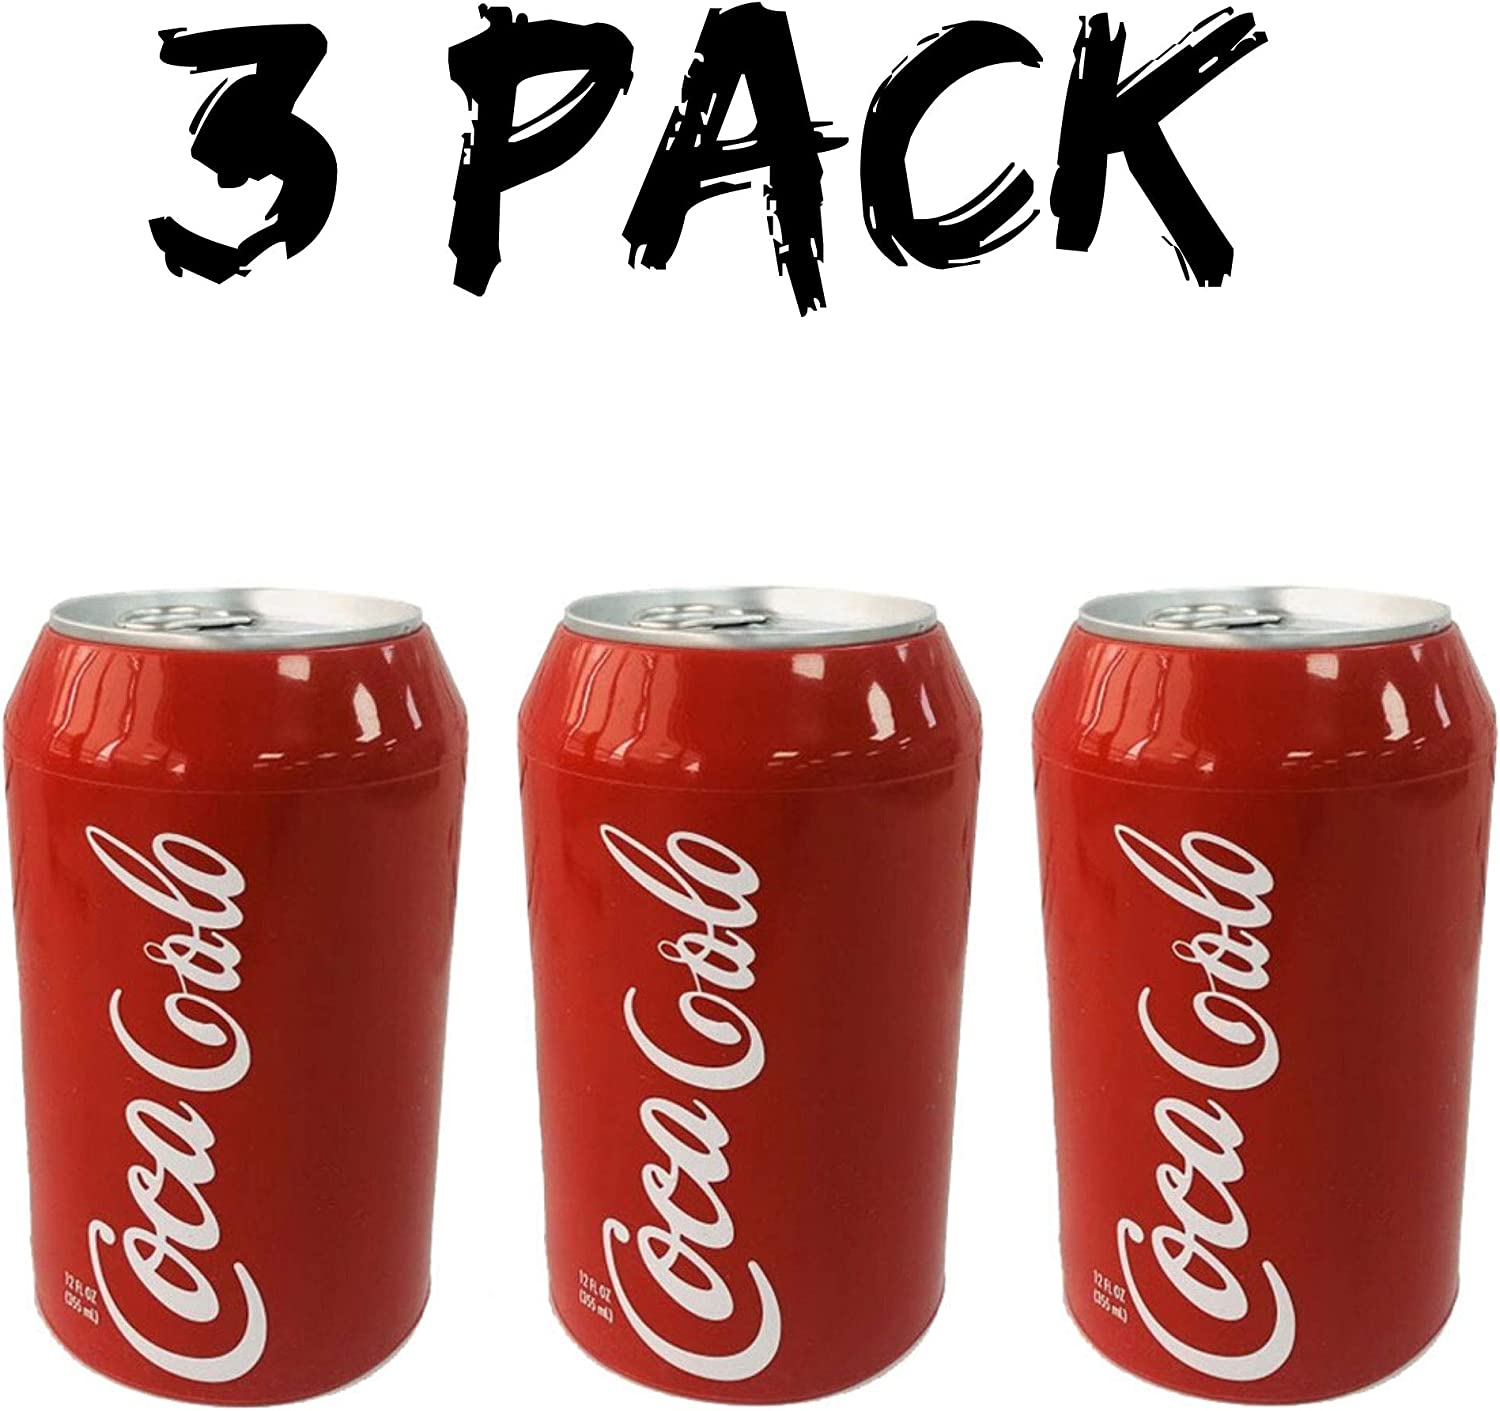 Skywin Silicone Can Sleeve (3 Pack) - Beer Can Cover can Hides Beer Can by Disguising it as a Can of Soda